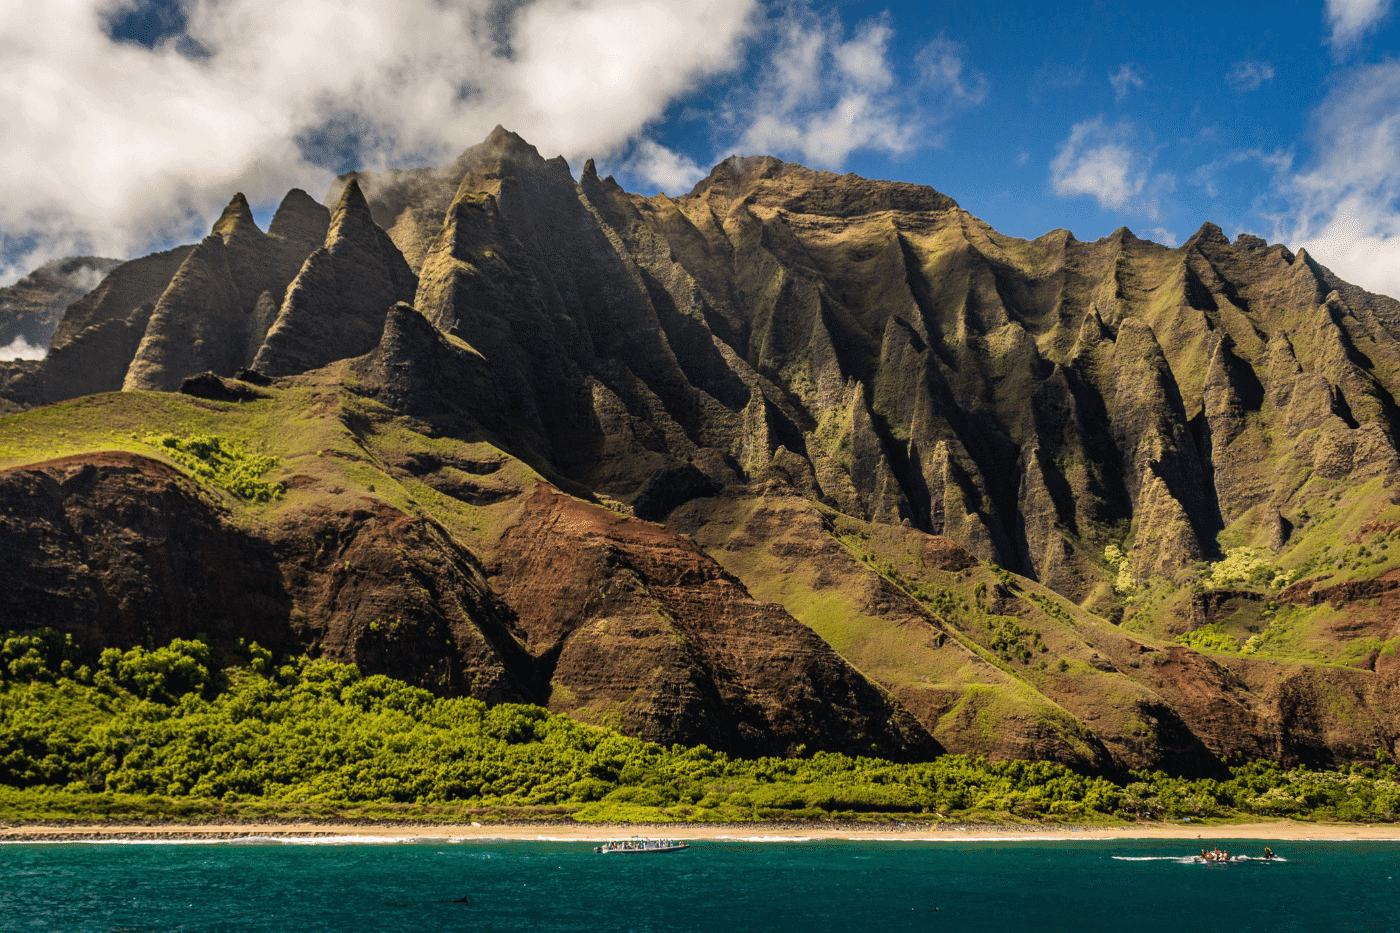 Help students develop an appreciation of the importance of marine ecosystems to the global environment and human life in this STEM trip to Hawaii.